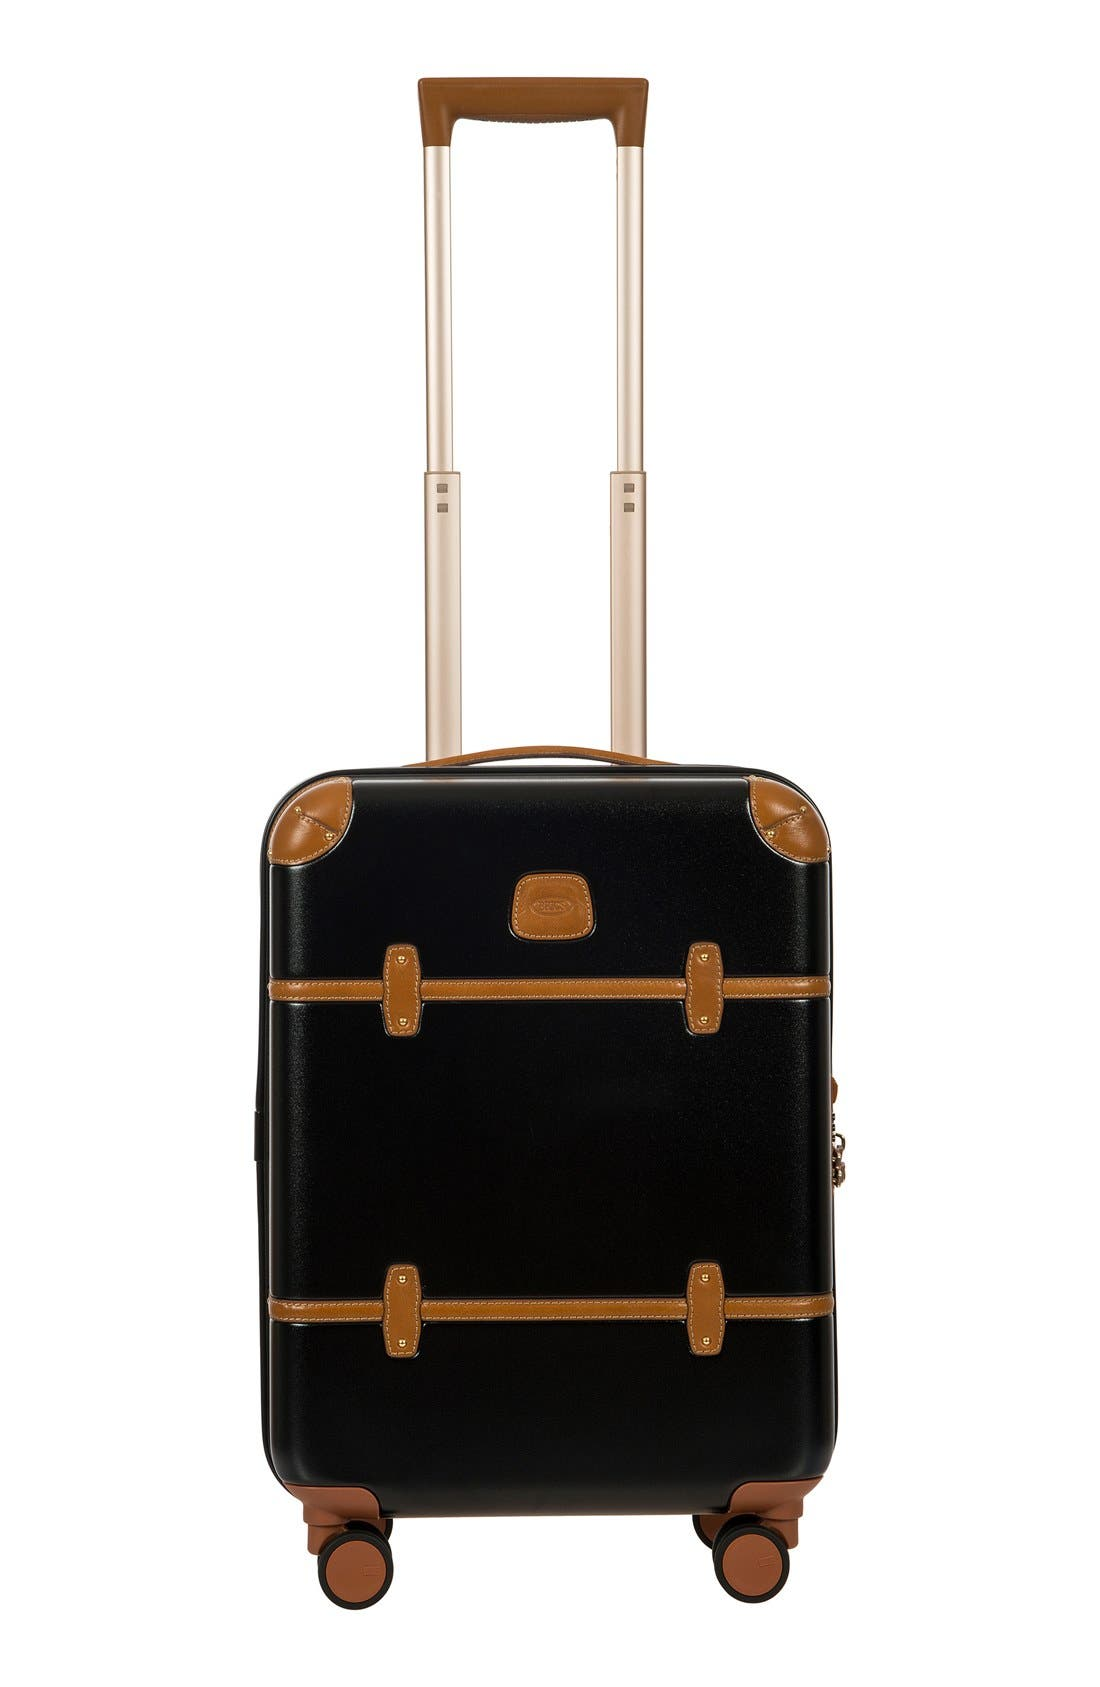 Bric's Bellagio 2.0 21 Inch Rolling Carry-On